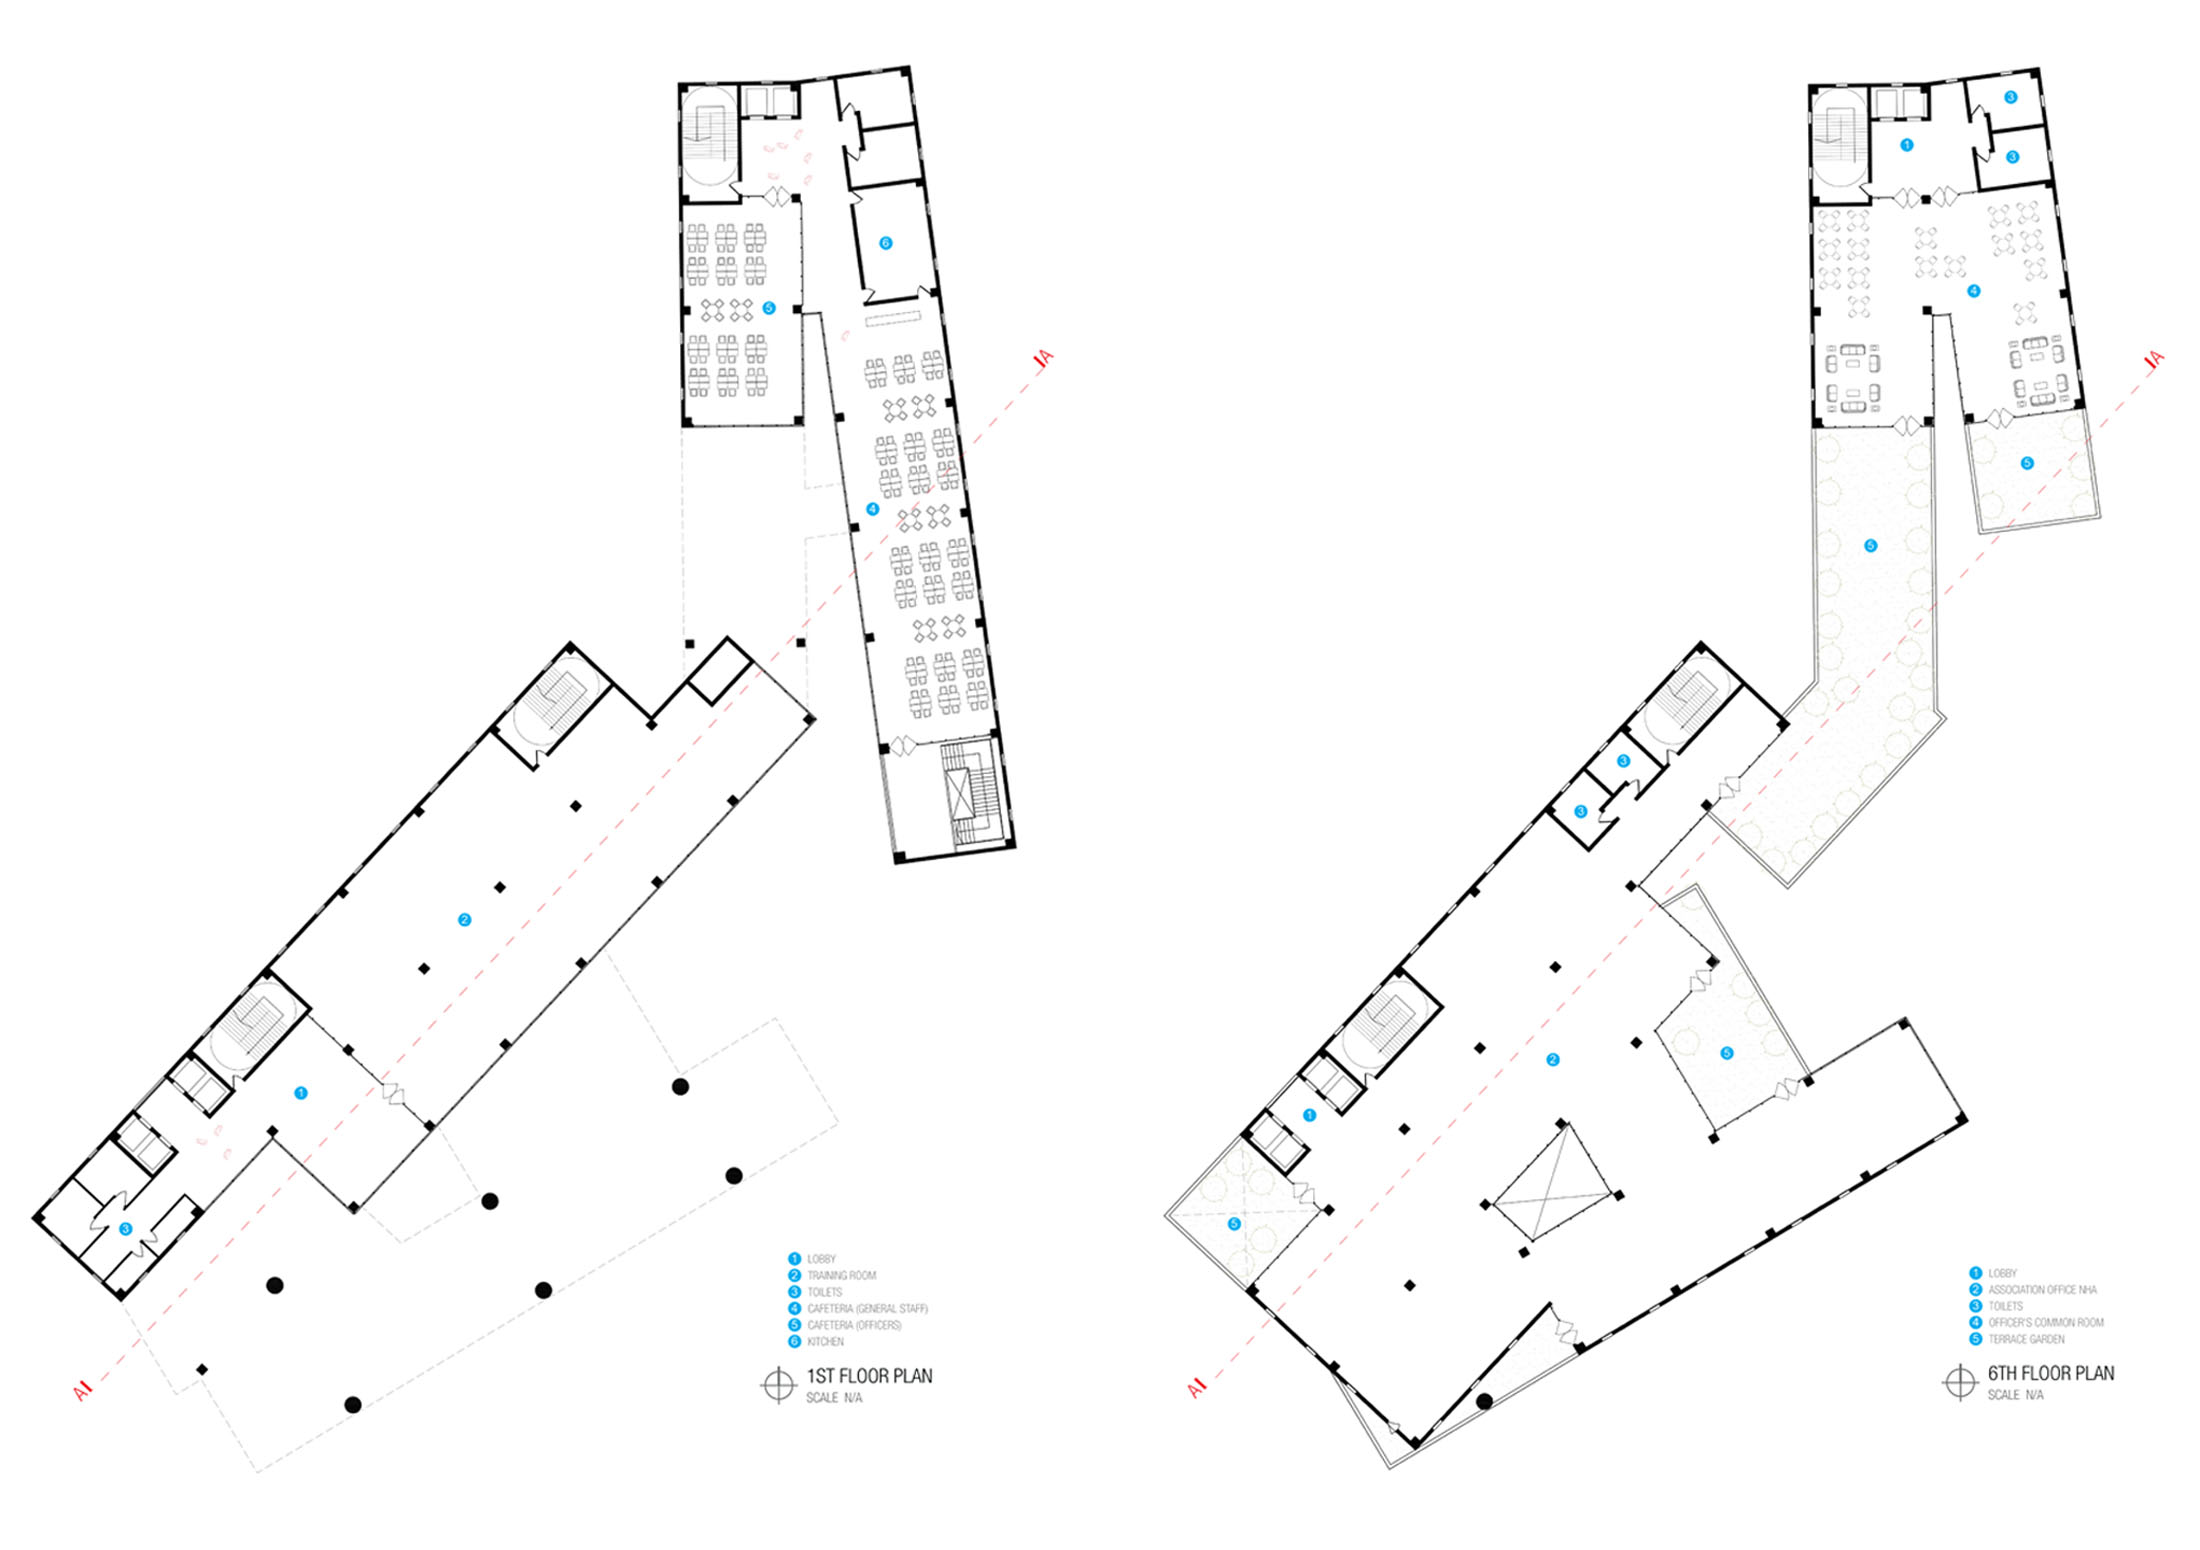 Floor Plans _ 1st + 6th © aakor architecture workshop